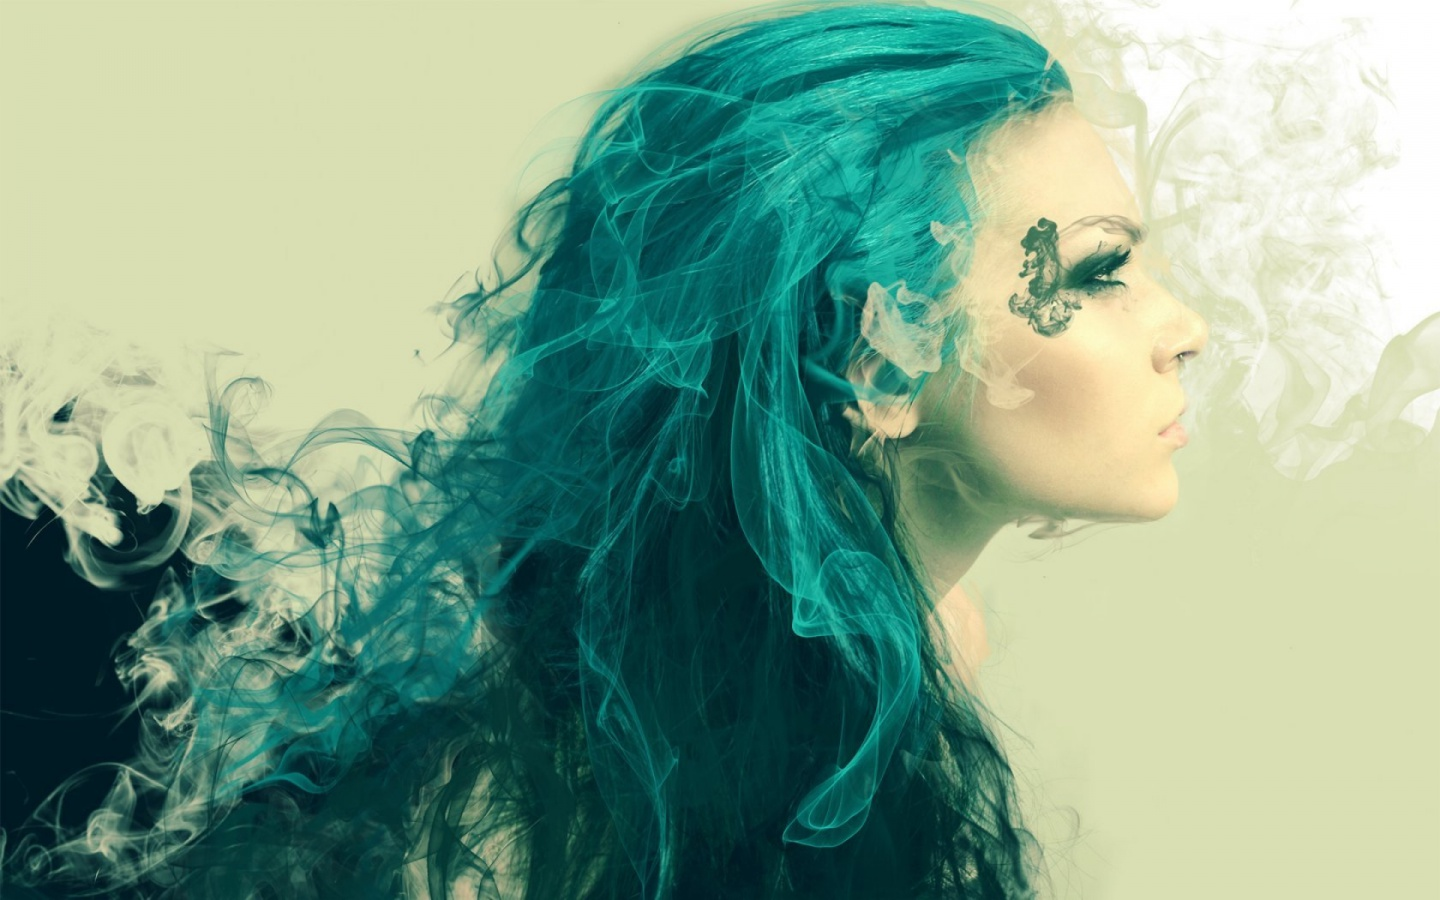 1440x900 Woman Turquoise Hair Looking